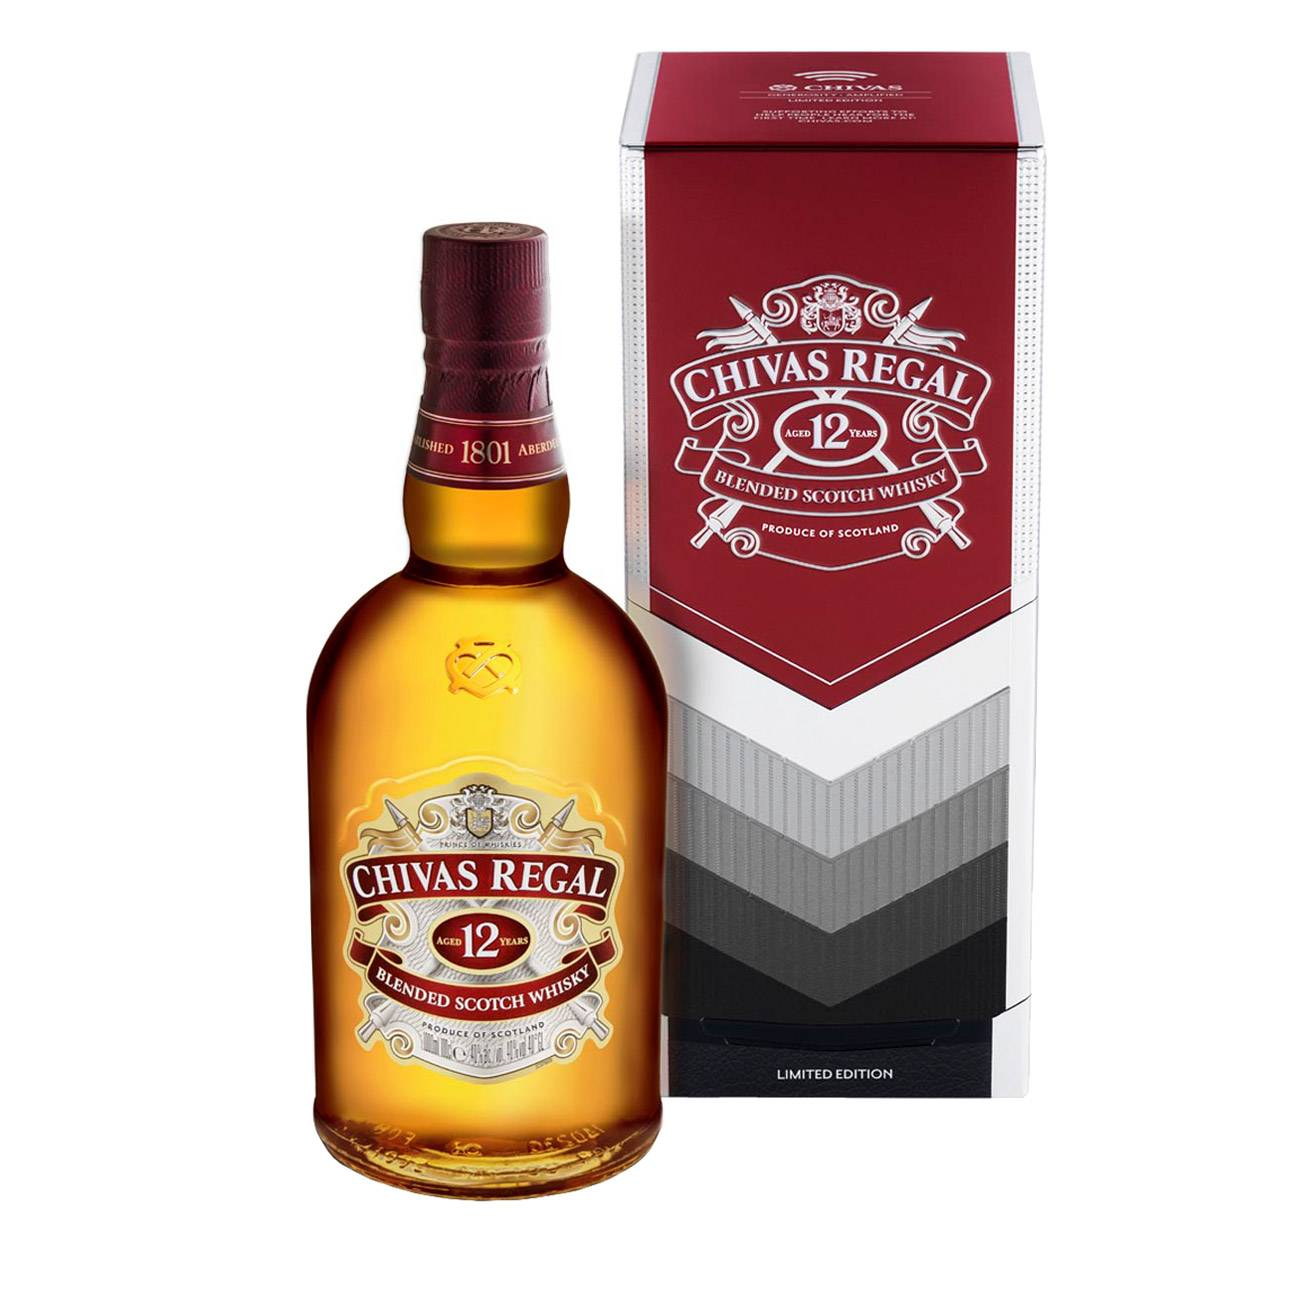 Whisky scotian, BLENDED SCOTCH 12 YEARS OLD LIMITED EDITION 1000 Ml, Chivas Regal